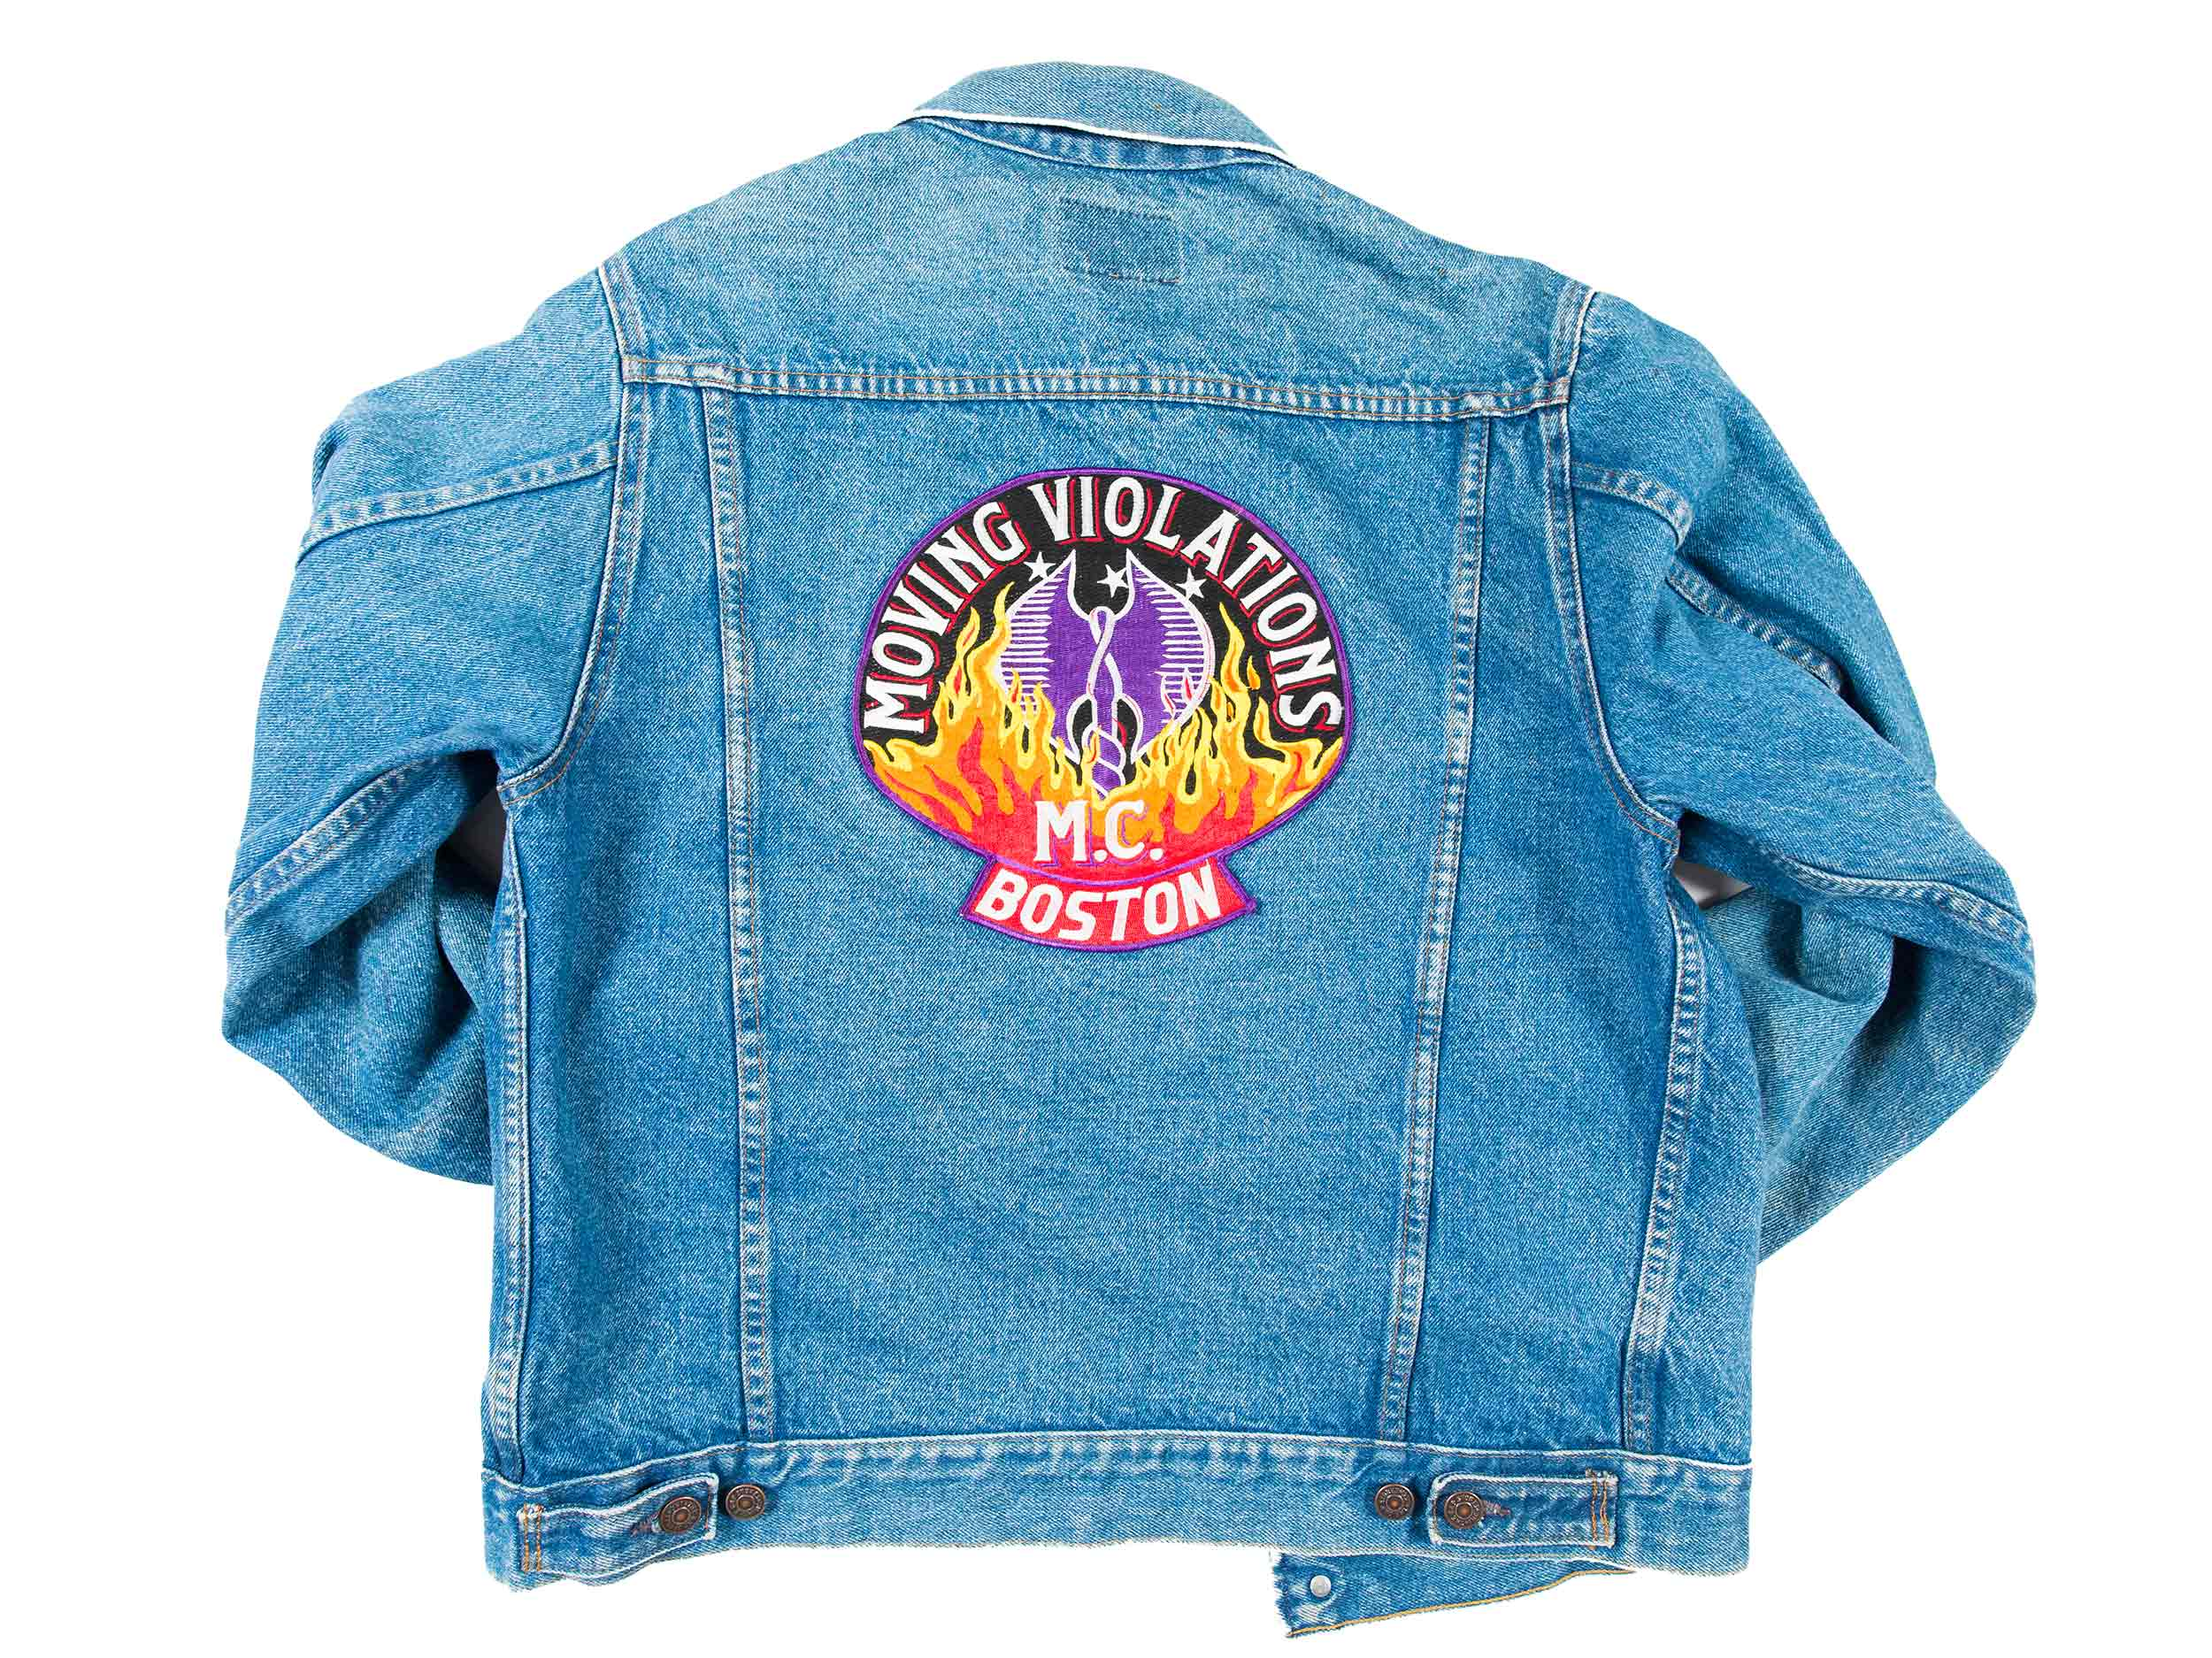 Moving Violations Motorcycle Club embroidered denim jacket, ca. 1985